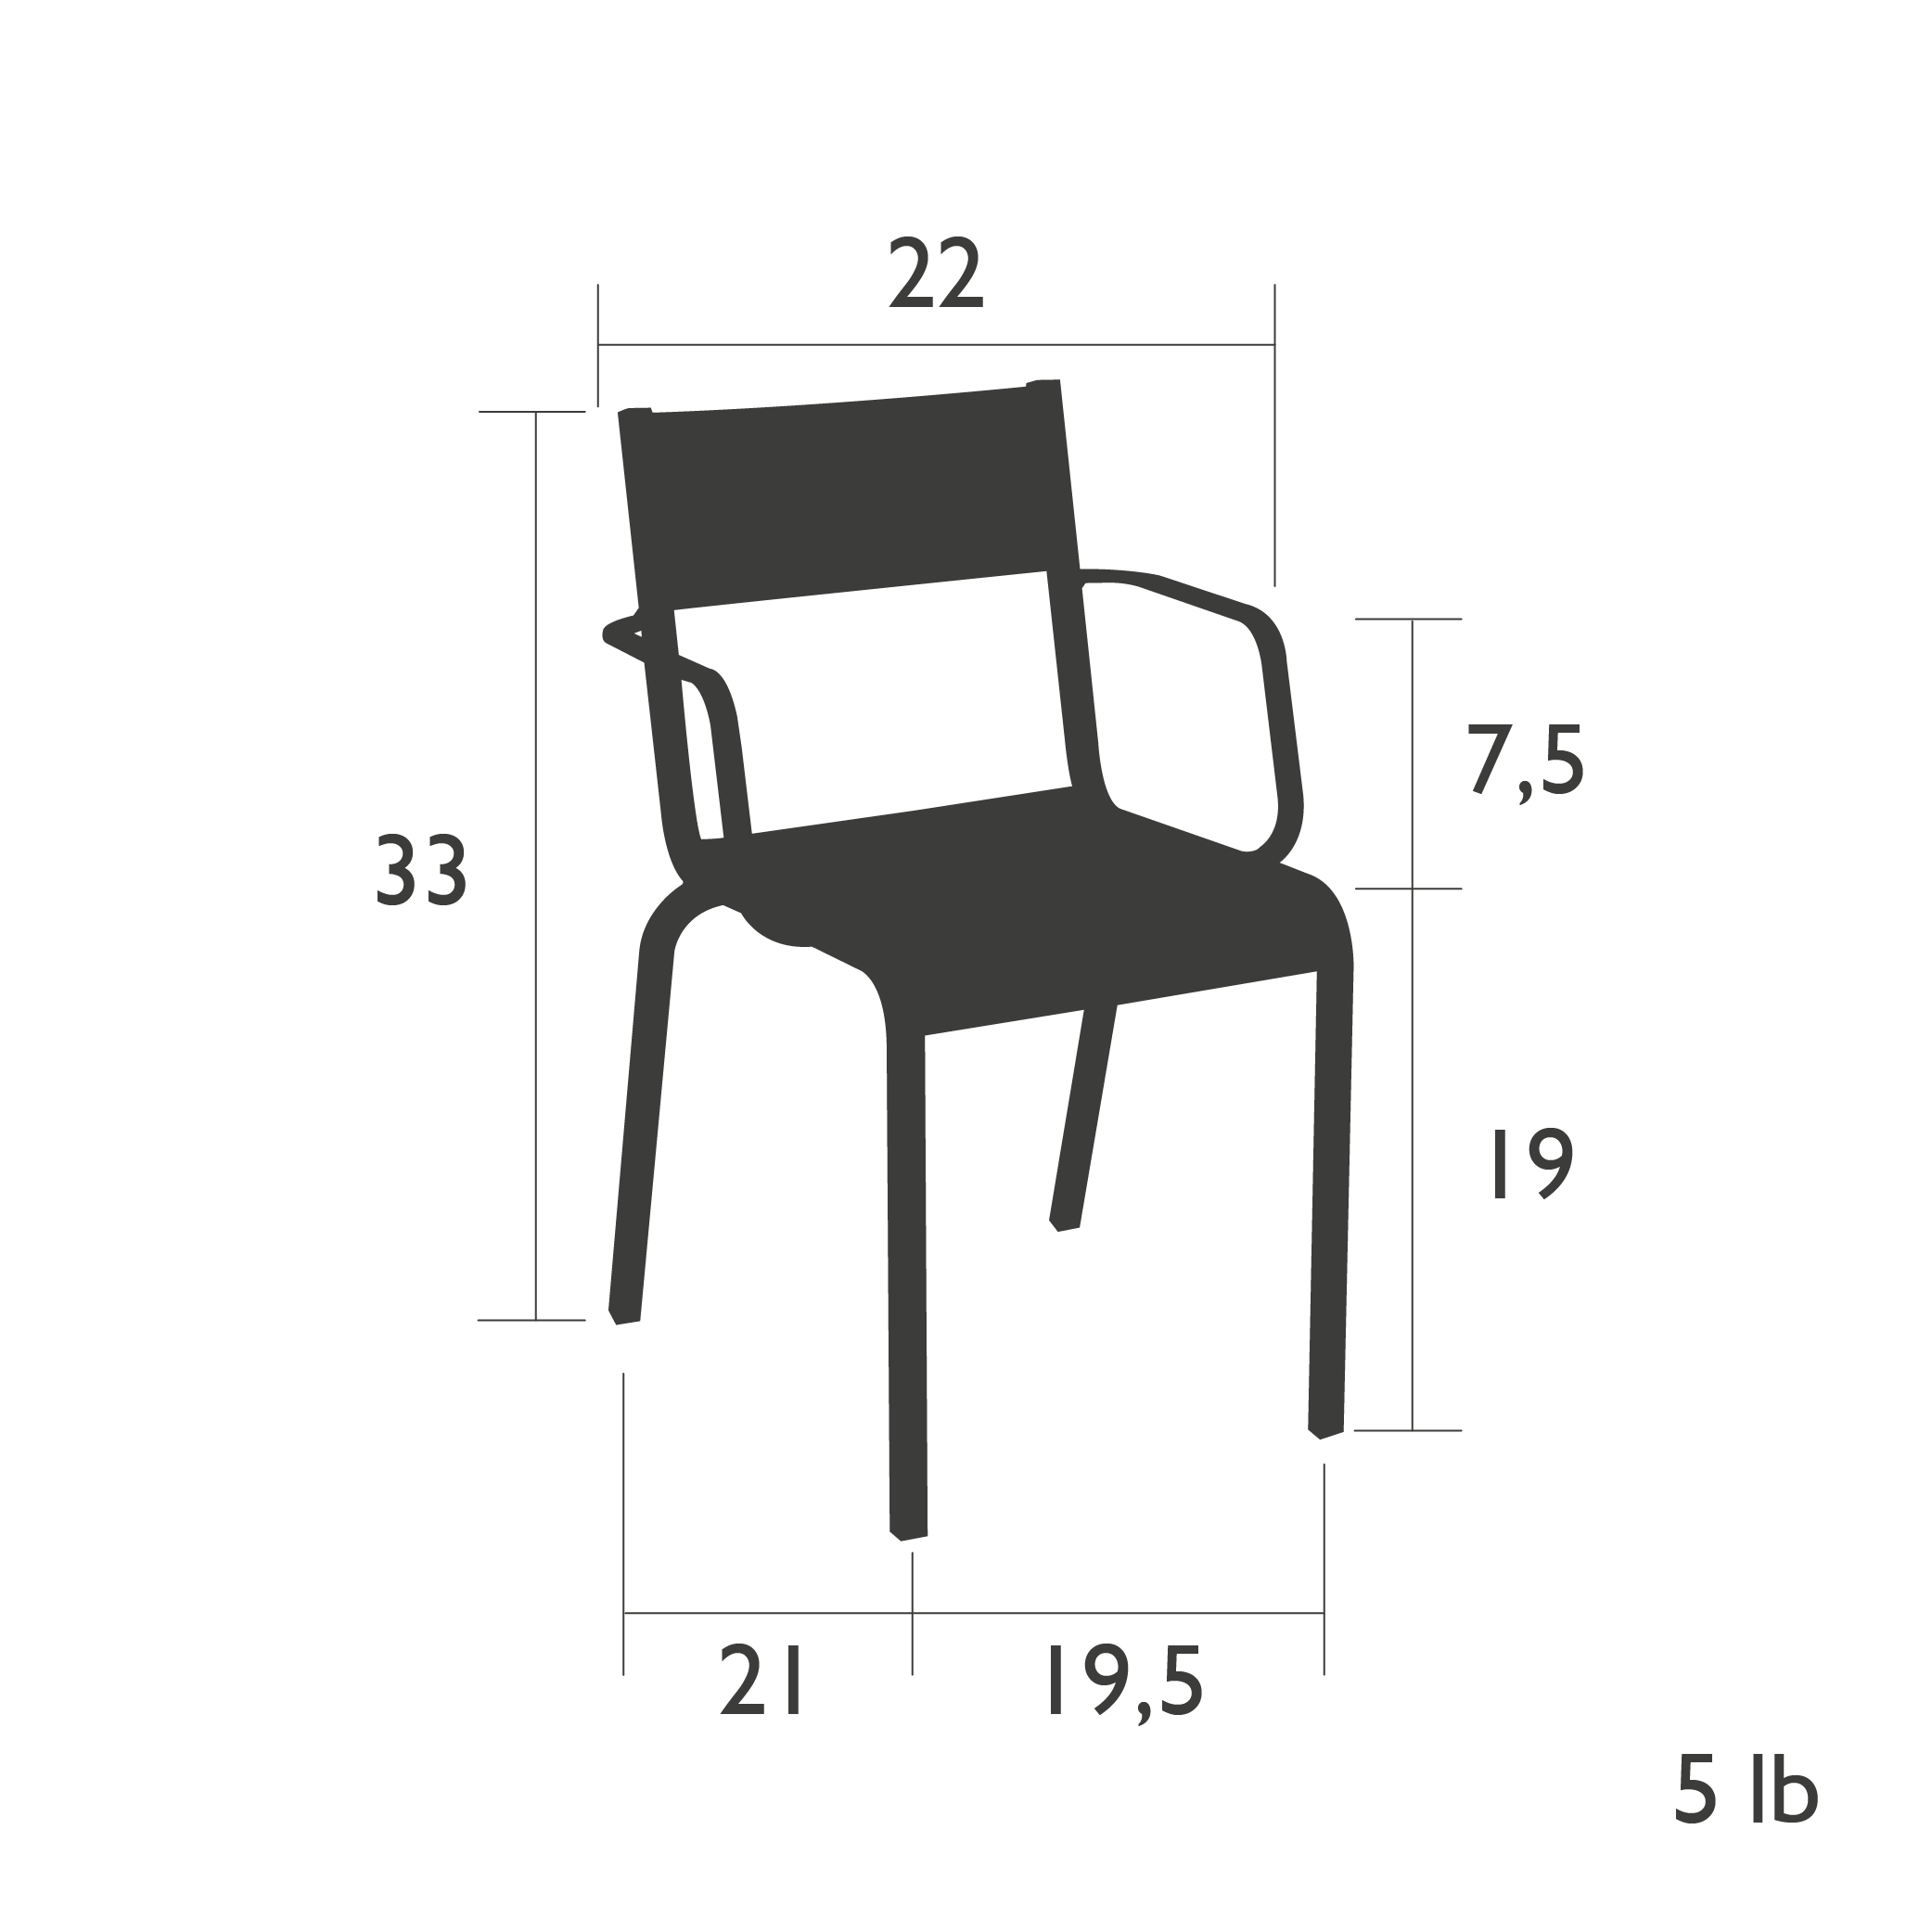 Oleron Armchair Technical Specifications